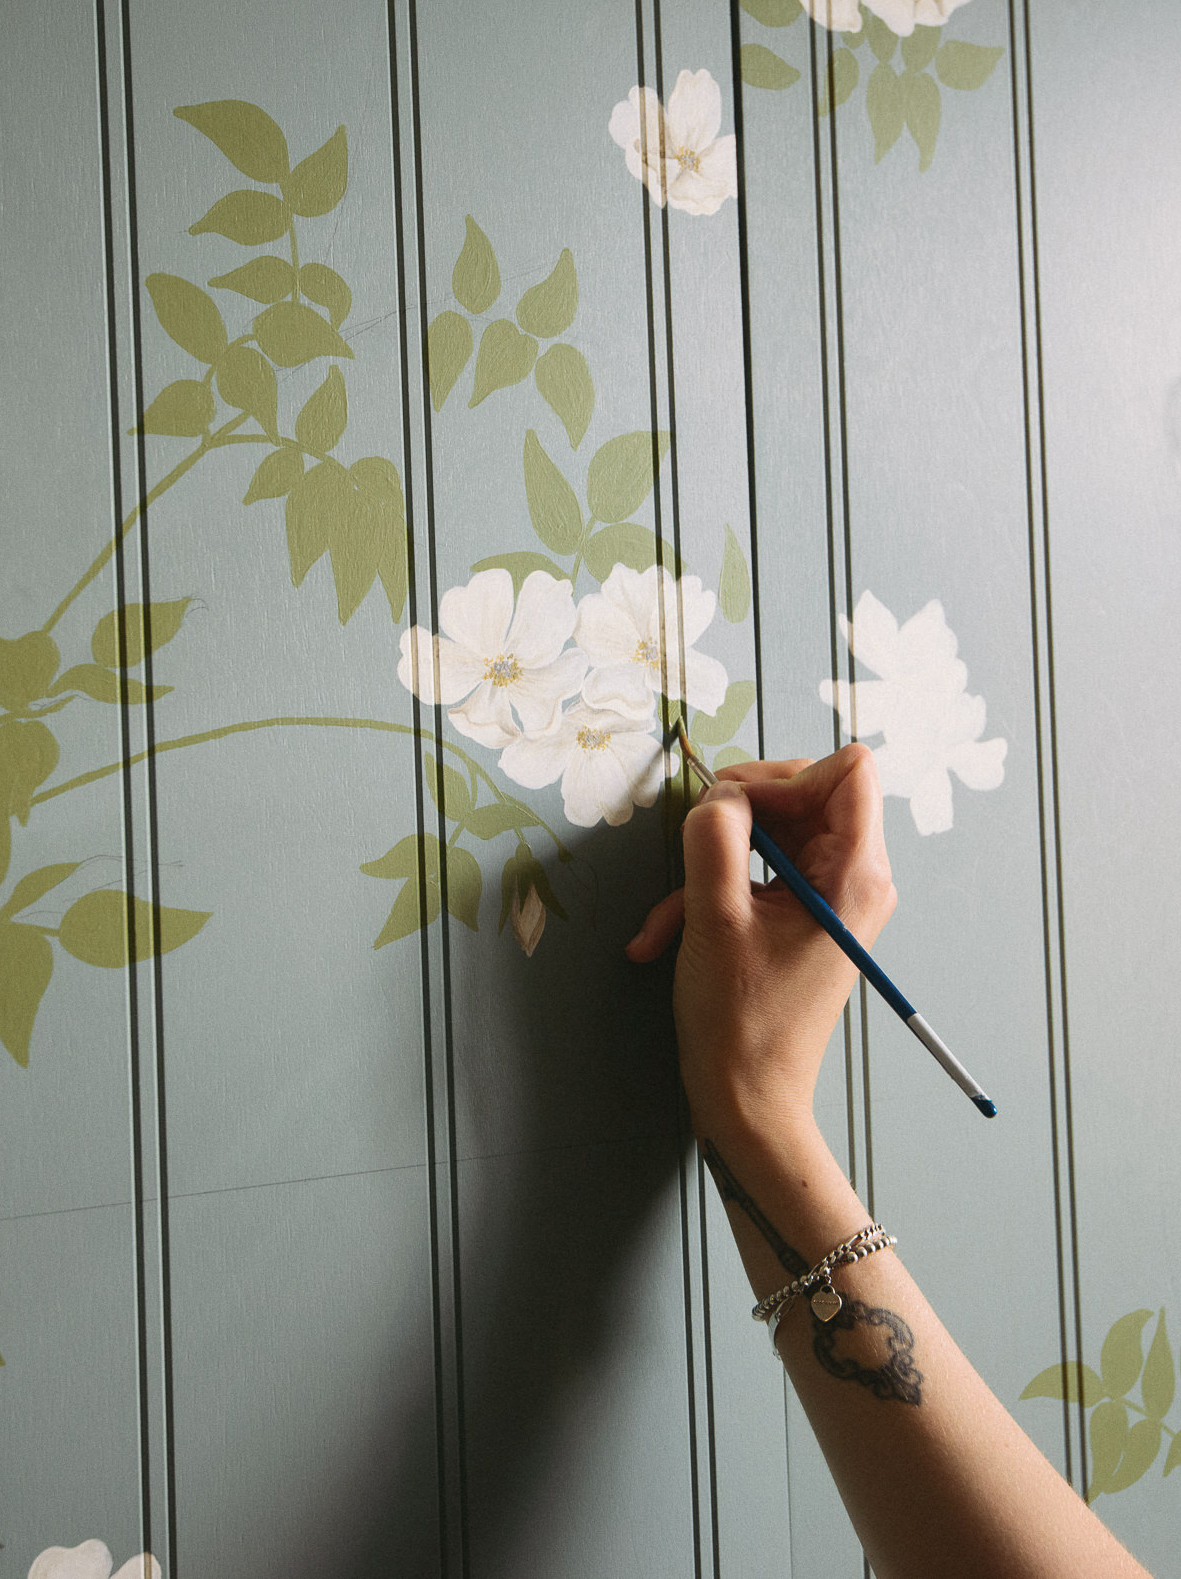 Our in-house Decorative Artist, Rosie, meticulously hand-paints each and every leaf and bloom.